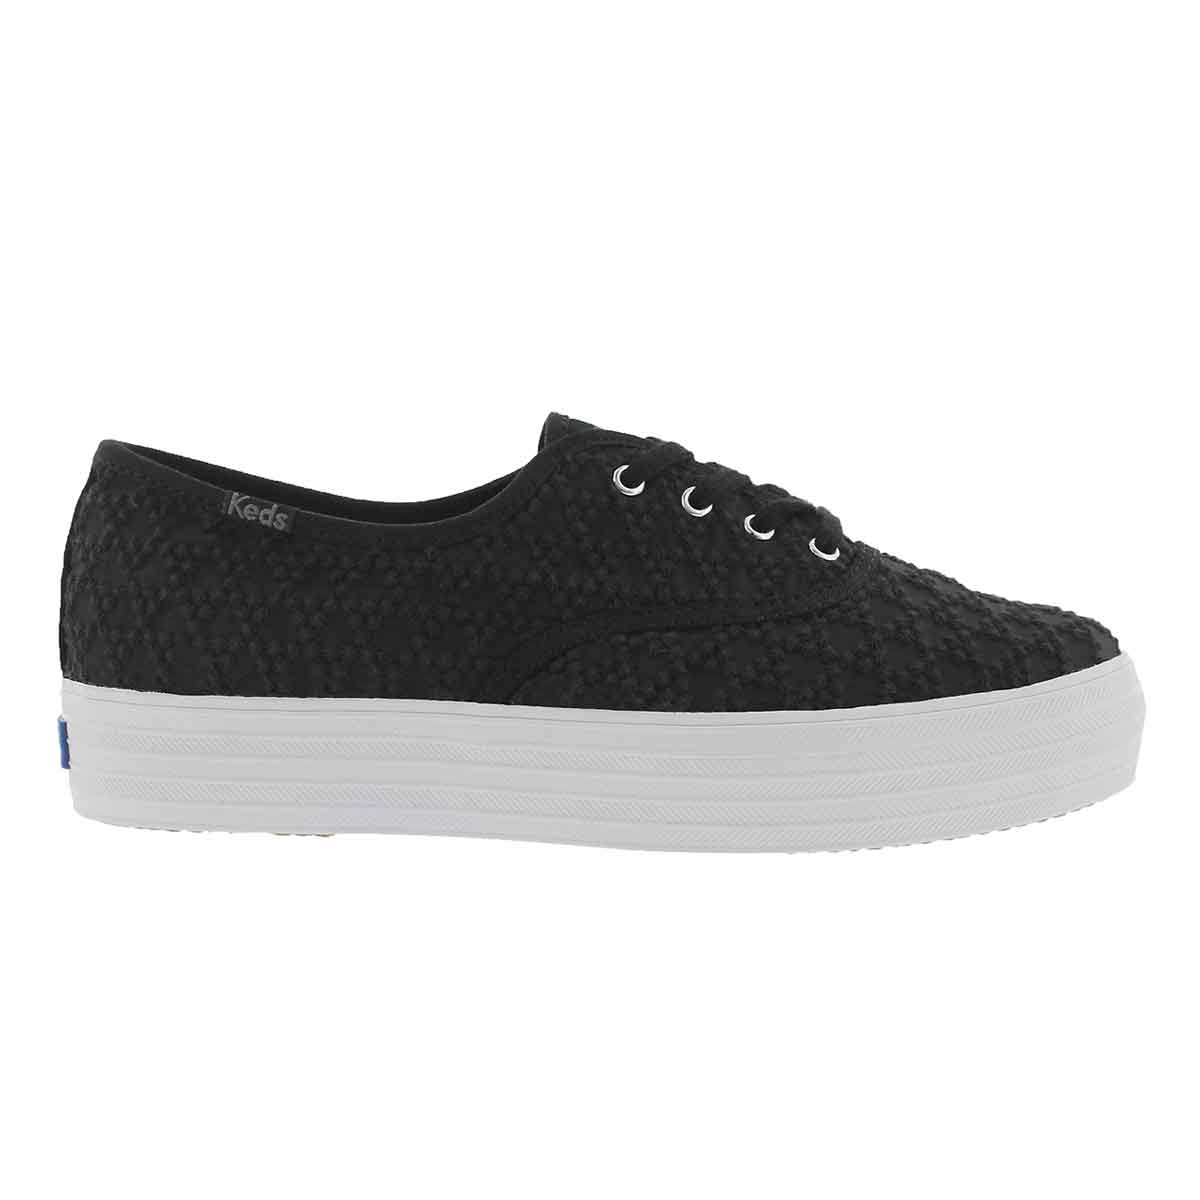 Lds Triple Embroidered Triangle blk snkr